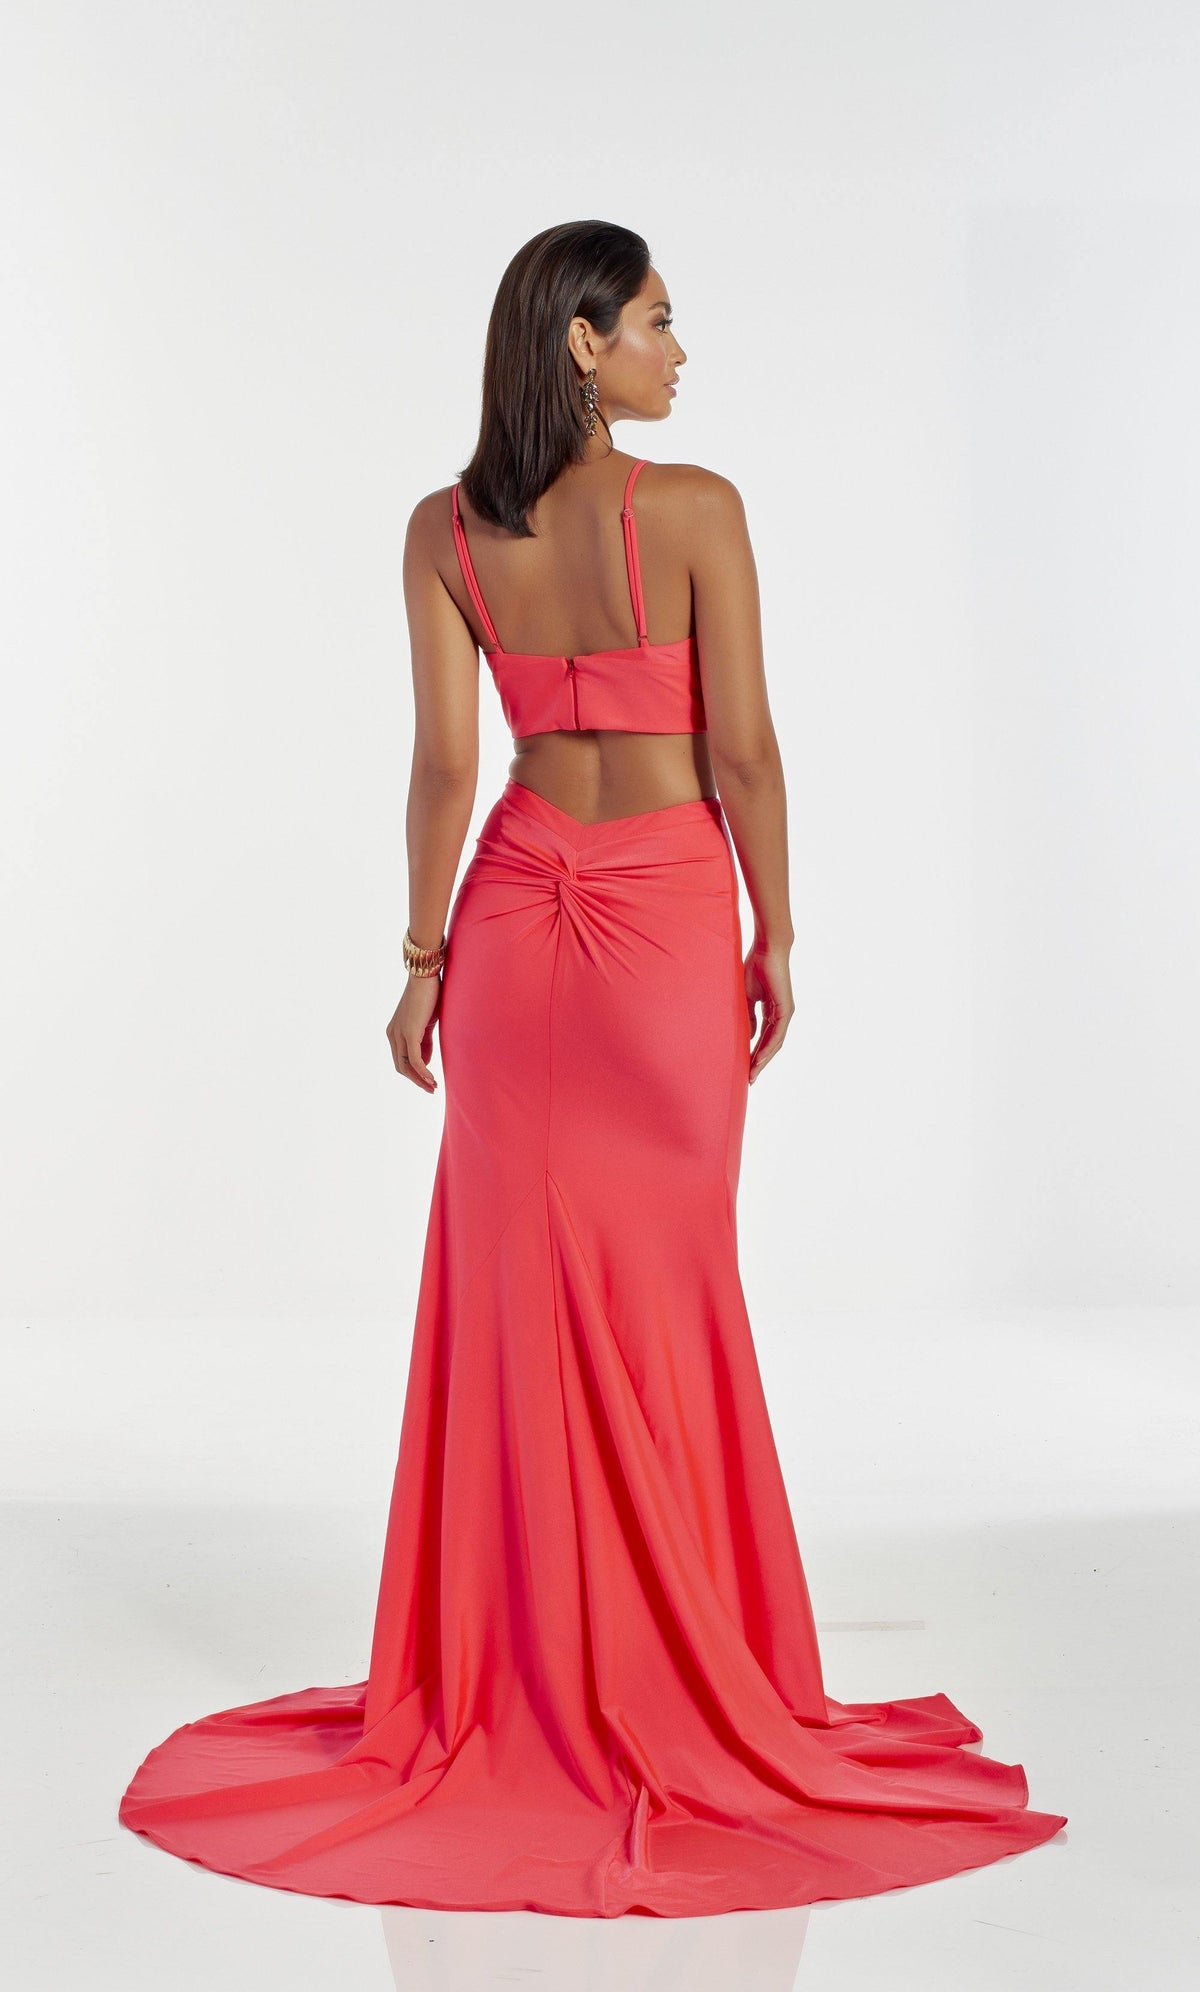 Watermelon Red two piece prom dress with knotted back detail and train